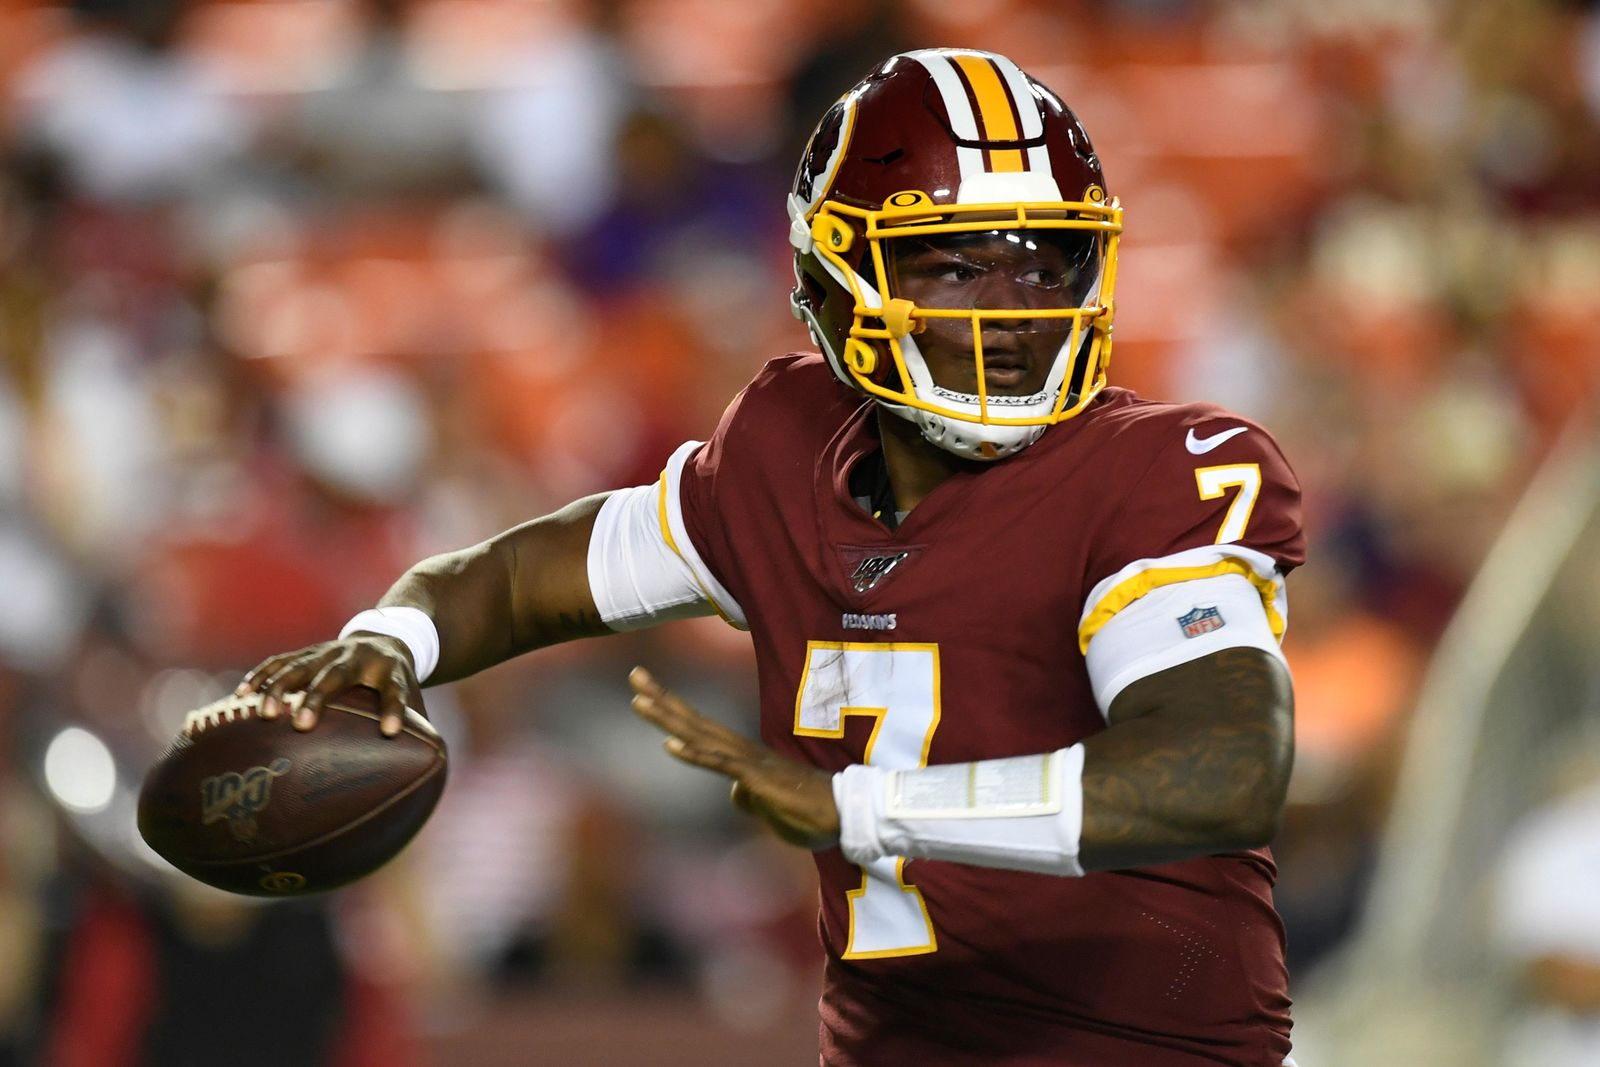 Washington Redskins quarterback Dwayne Haskins looks for an opening during the first half of an NFL preseason football game against the Baltimore Ravens at FedEx Field in Landover, Md., Thursday, Aug. 29, 2019. (AP Photo/Susan Walsh)